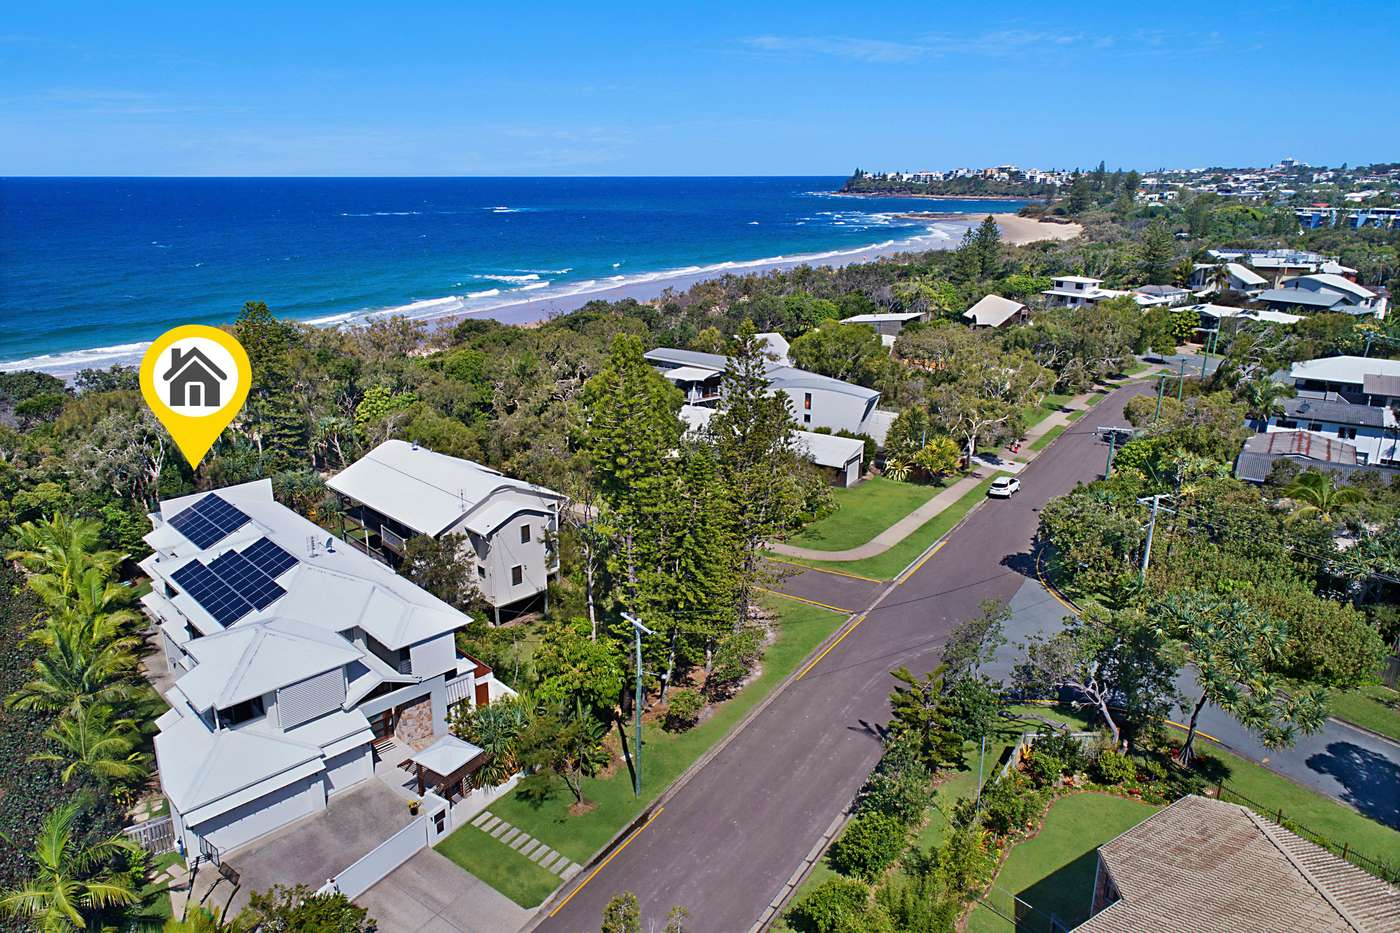 Main view of Homely house listing, 1 Ngungun Street, Dicky Beach, QLD 4551